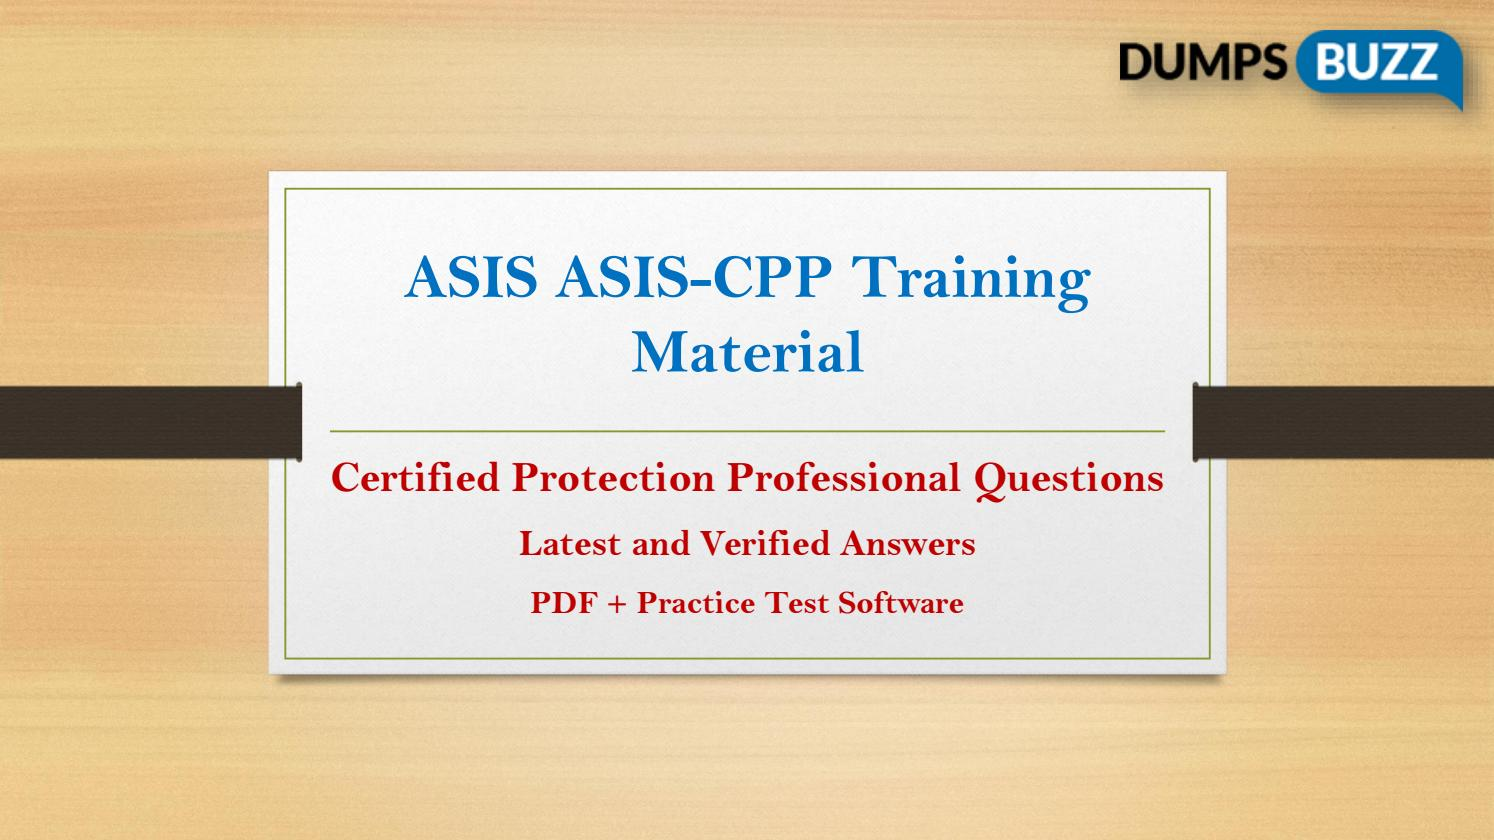 Asis ASIS-CPP test dumps with success promise on first attempt by  Genevapierson - issuu